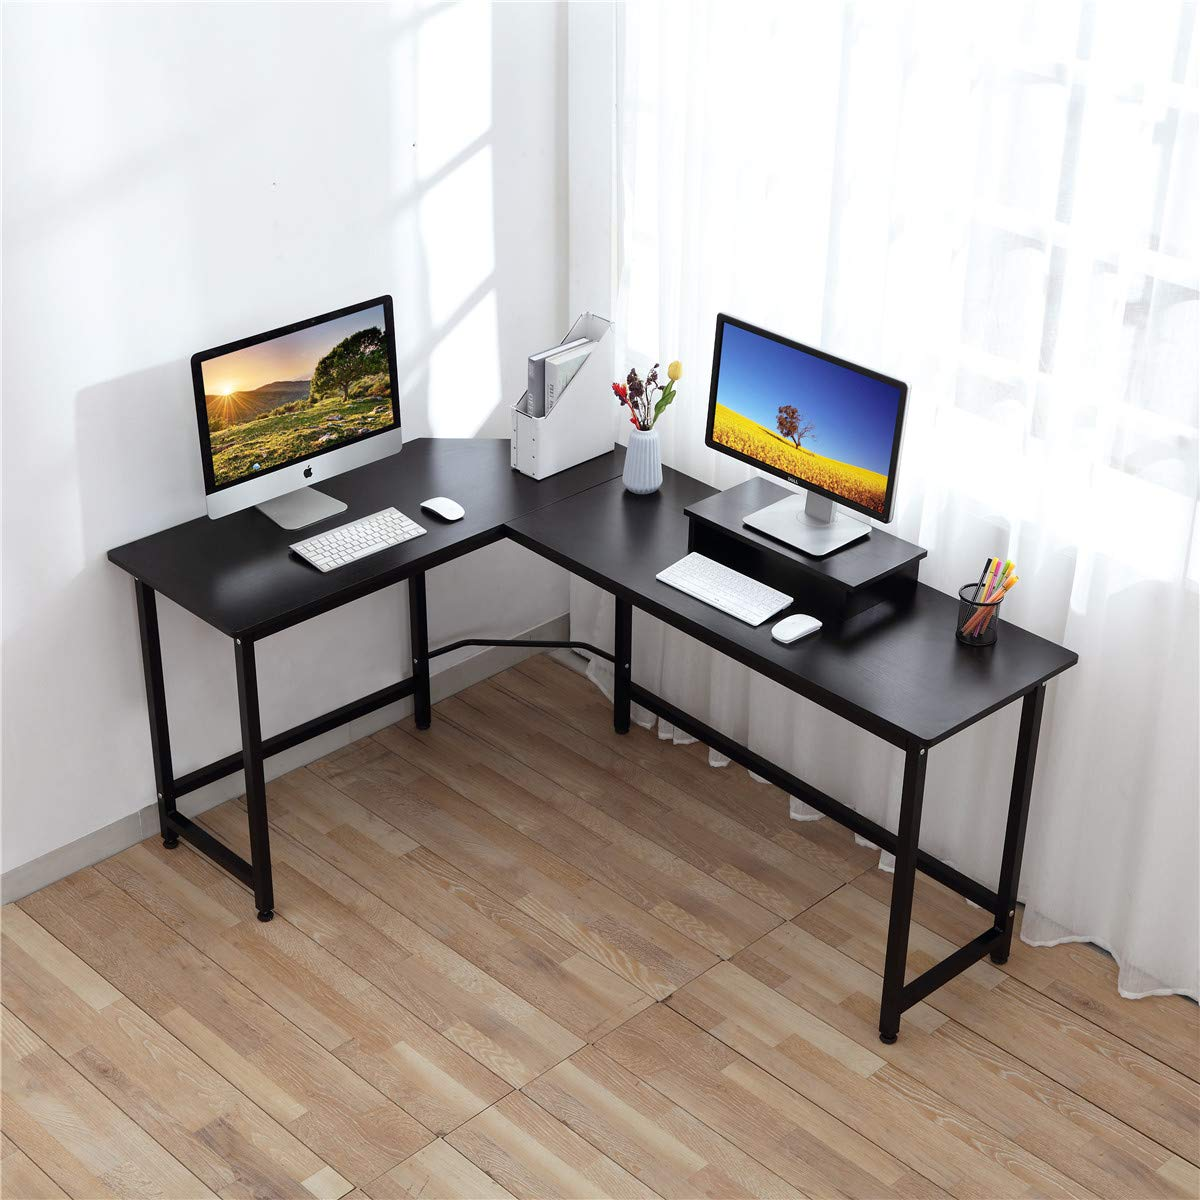 Computer Desk - CrazyLynX Corner Desk PC Workstation Table with Monitor Stand for PC Laptop, for Home Office, Wood & Metal (Black)